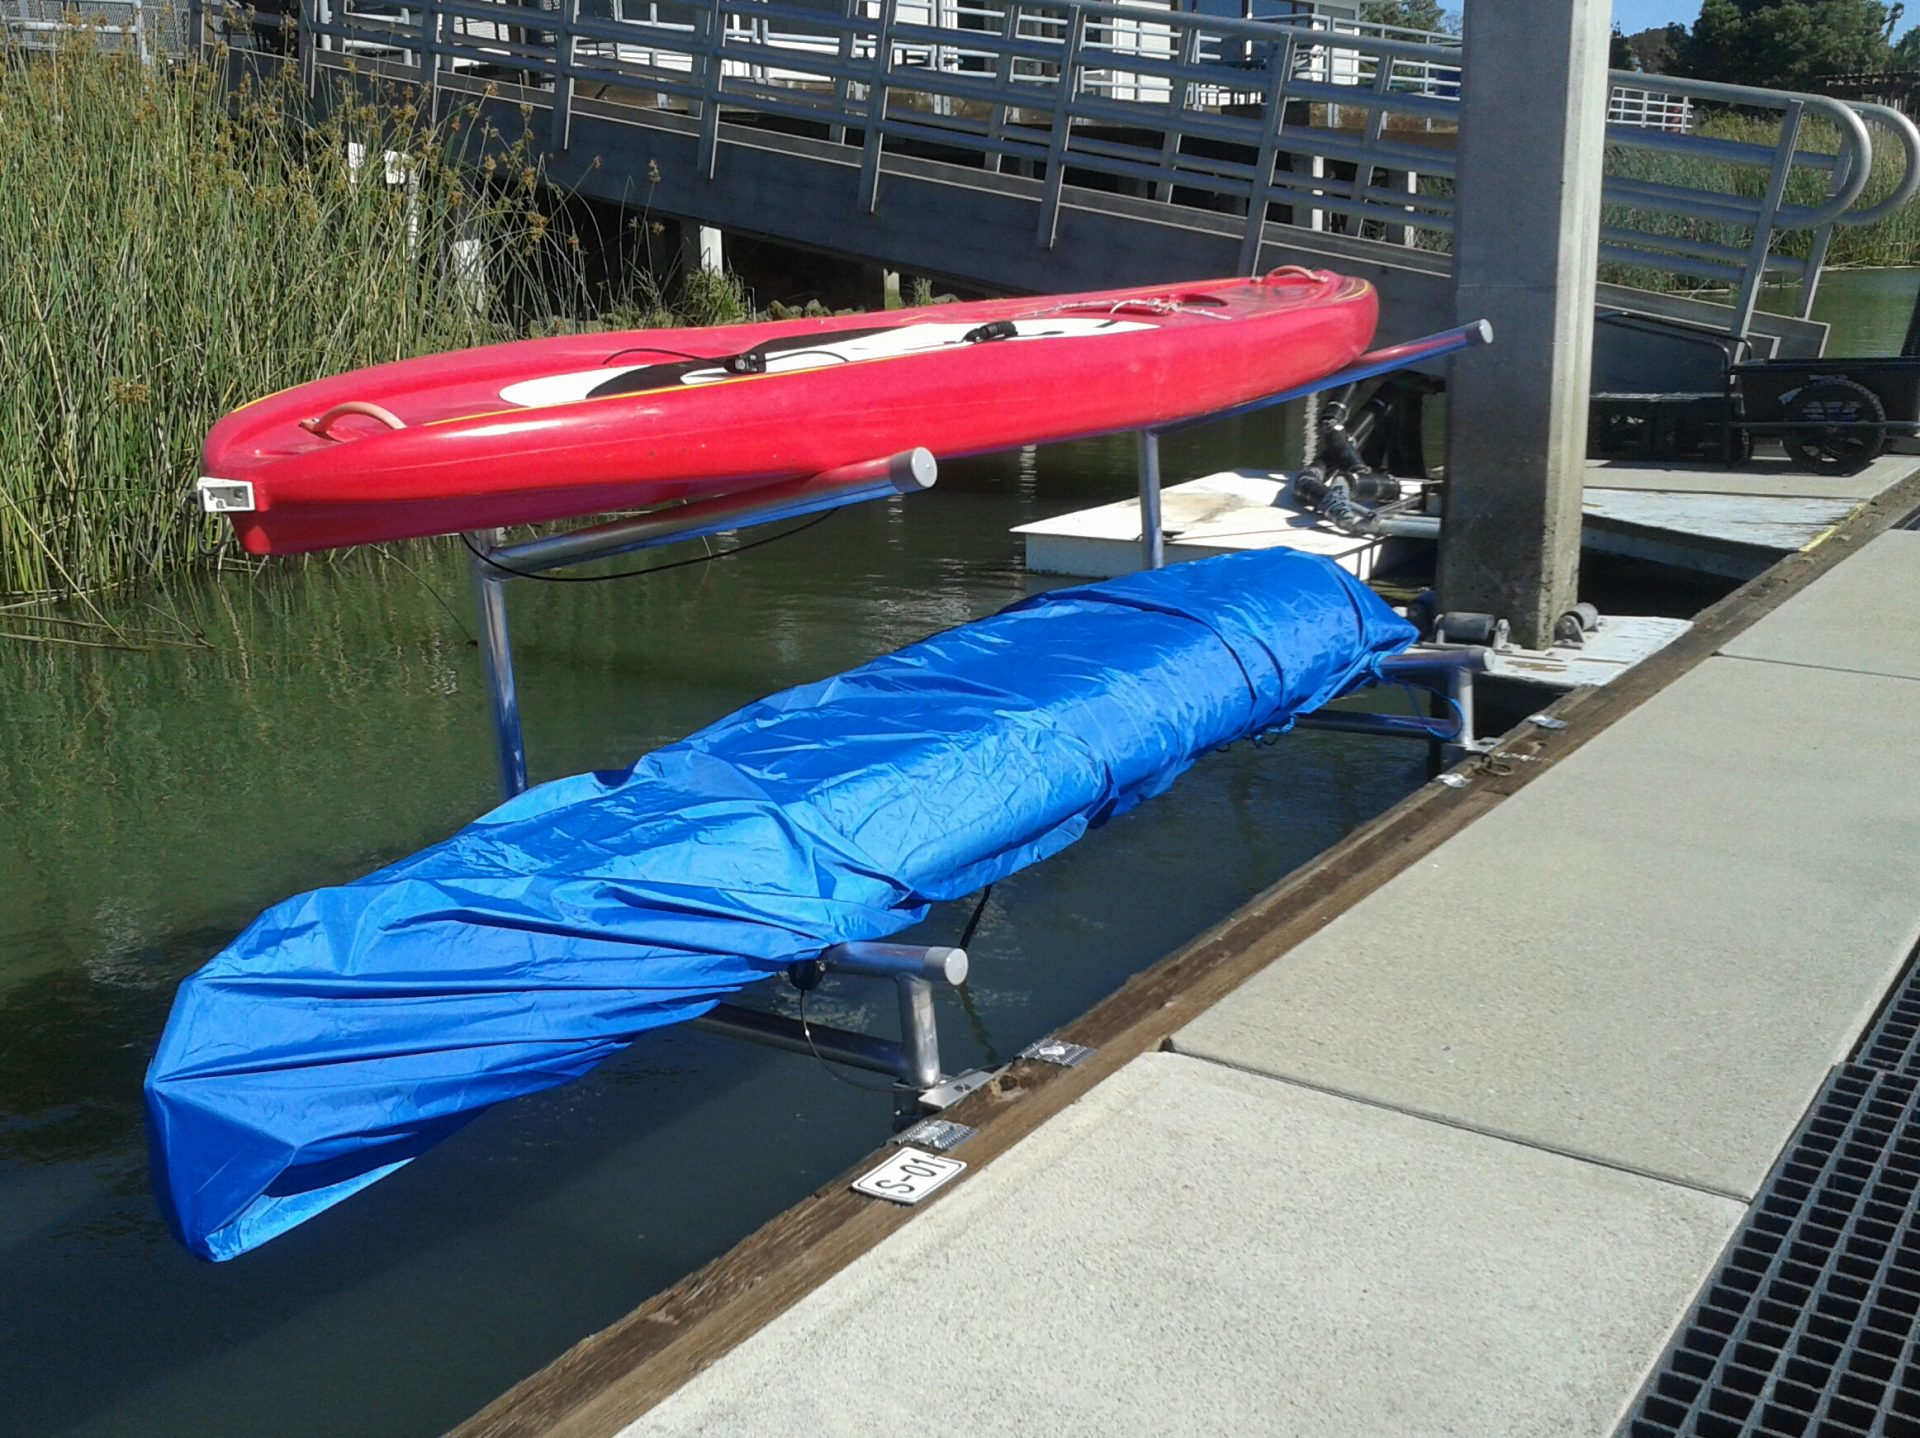 red and blue kayaks in racks